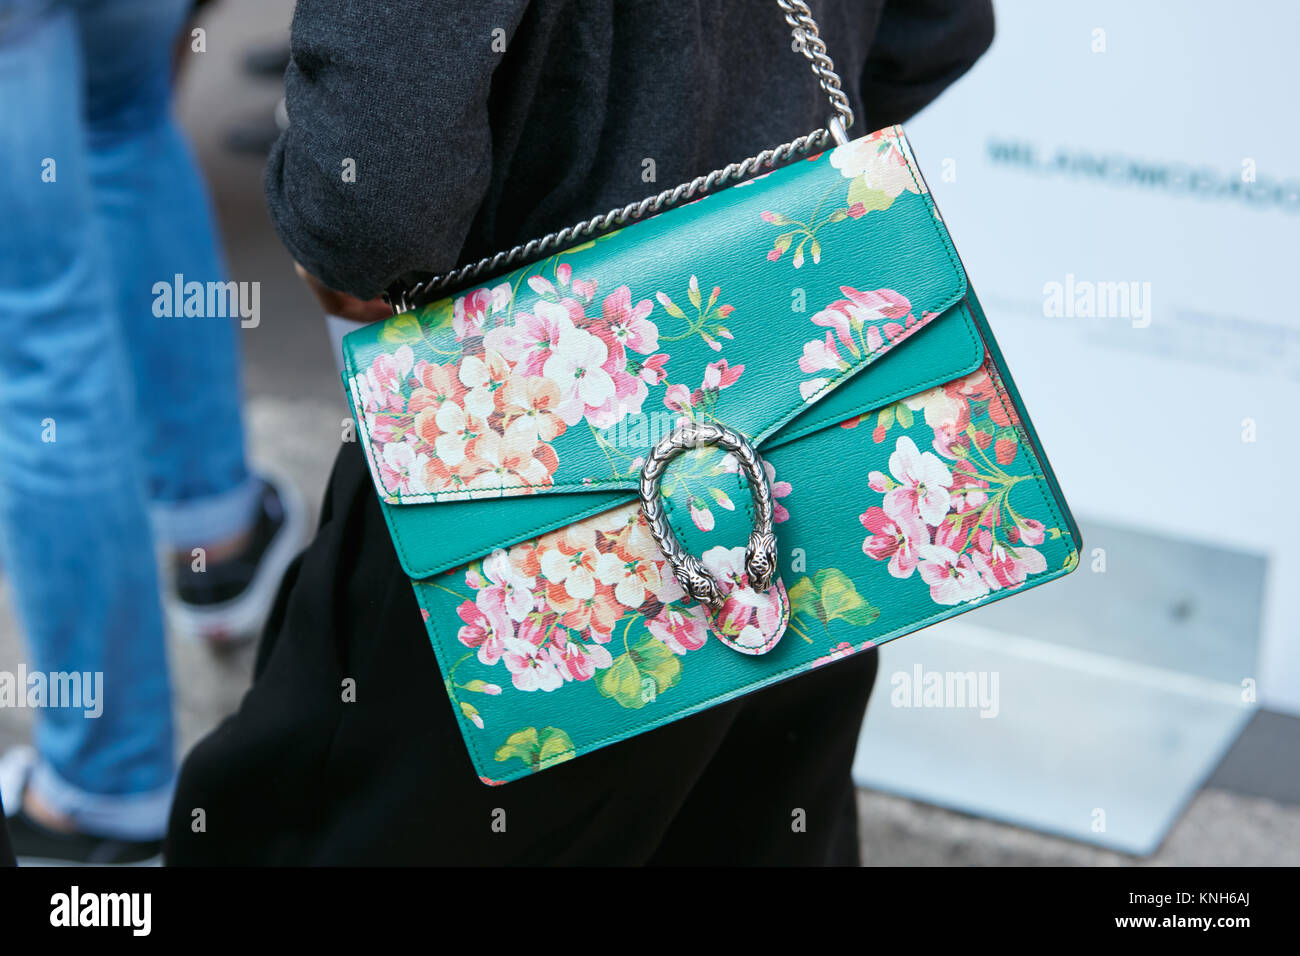 5f8bde05e8b MILAN - SEPTEMBER 24  Woman with green Gucci bag with floral design before  Trussardi fashion